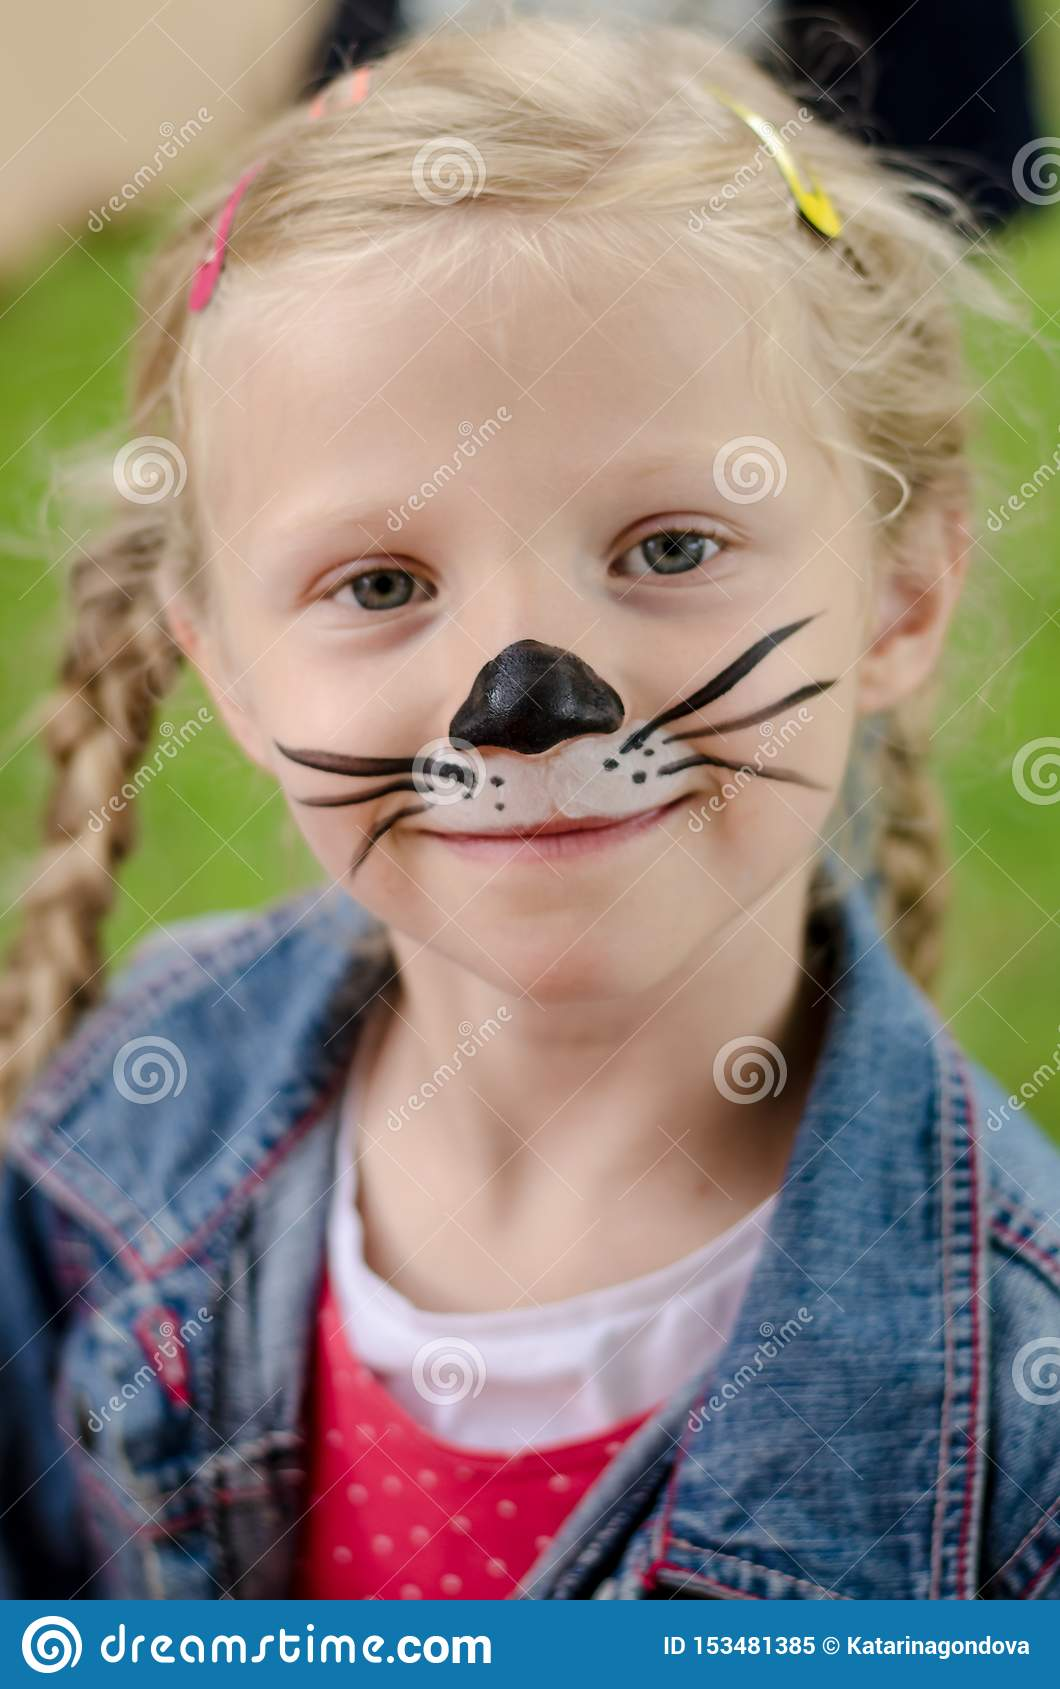 Mouse Face Paint : mouse, paint, Smiling, Painting, Mouse, Stock, Image, Face,, Funny:, 153481385